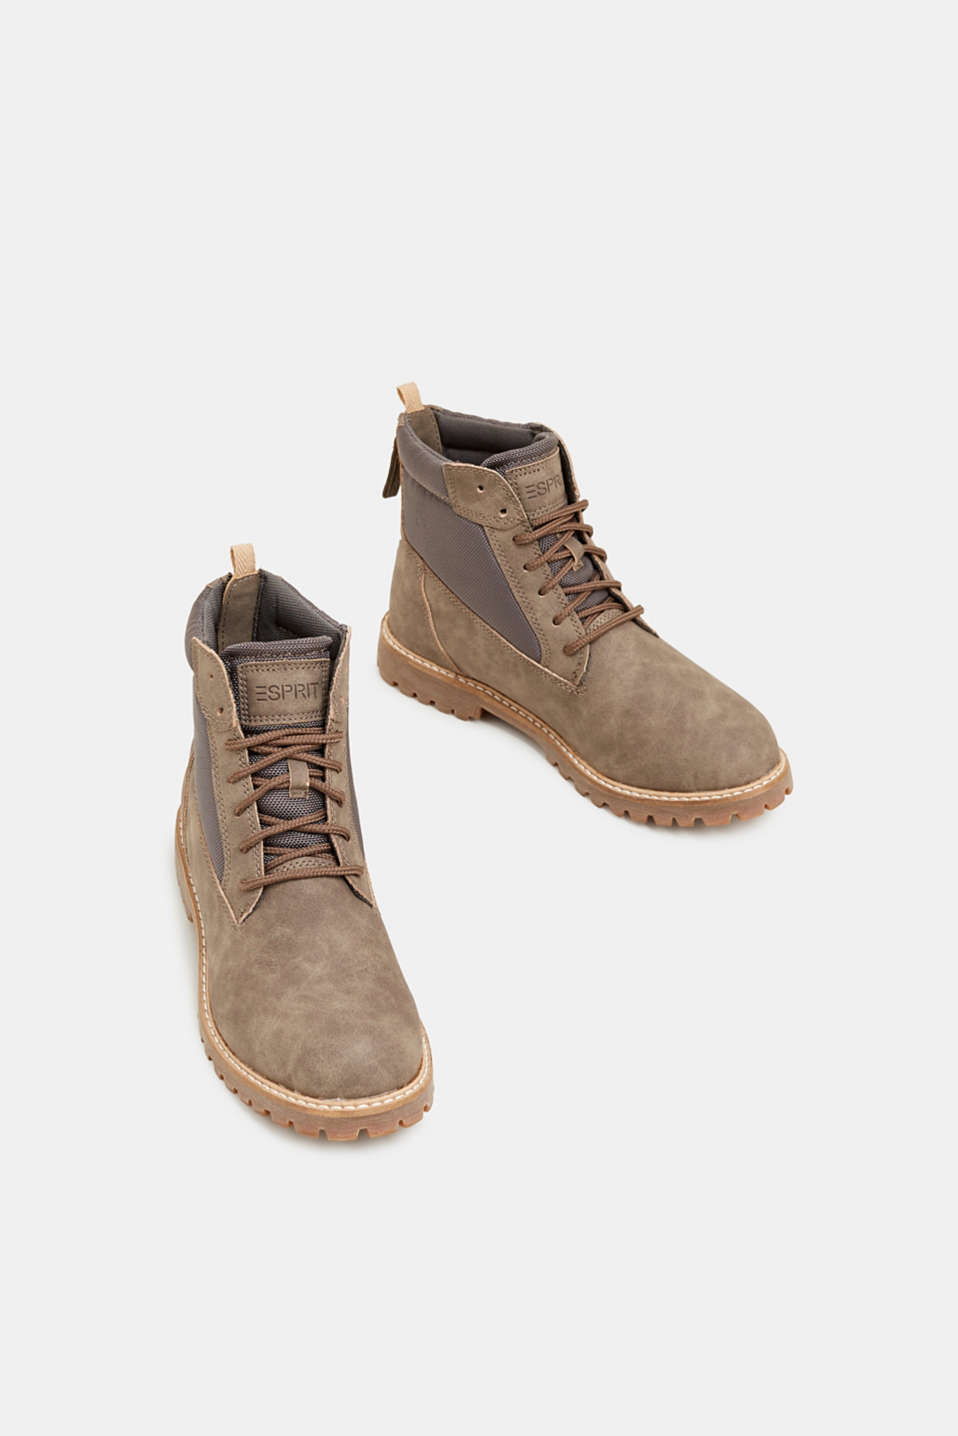 Faux nubuck leather lace-up boots, TAUPE, detail image number 1